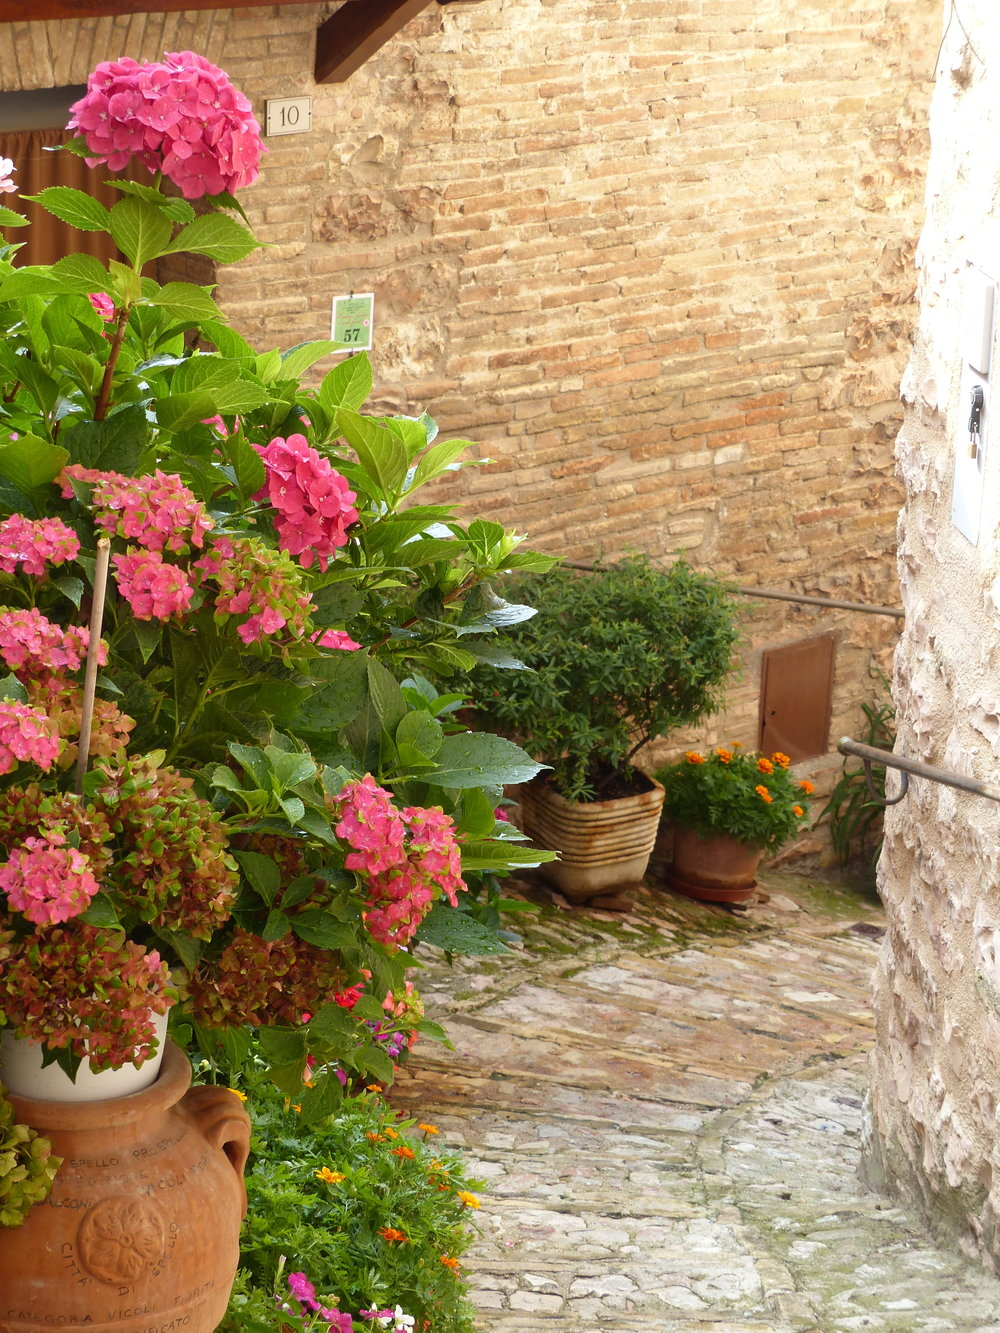 View down an alley in Spello, Umbria